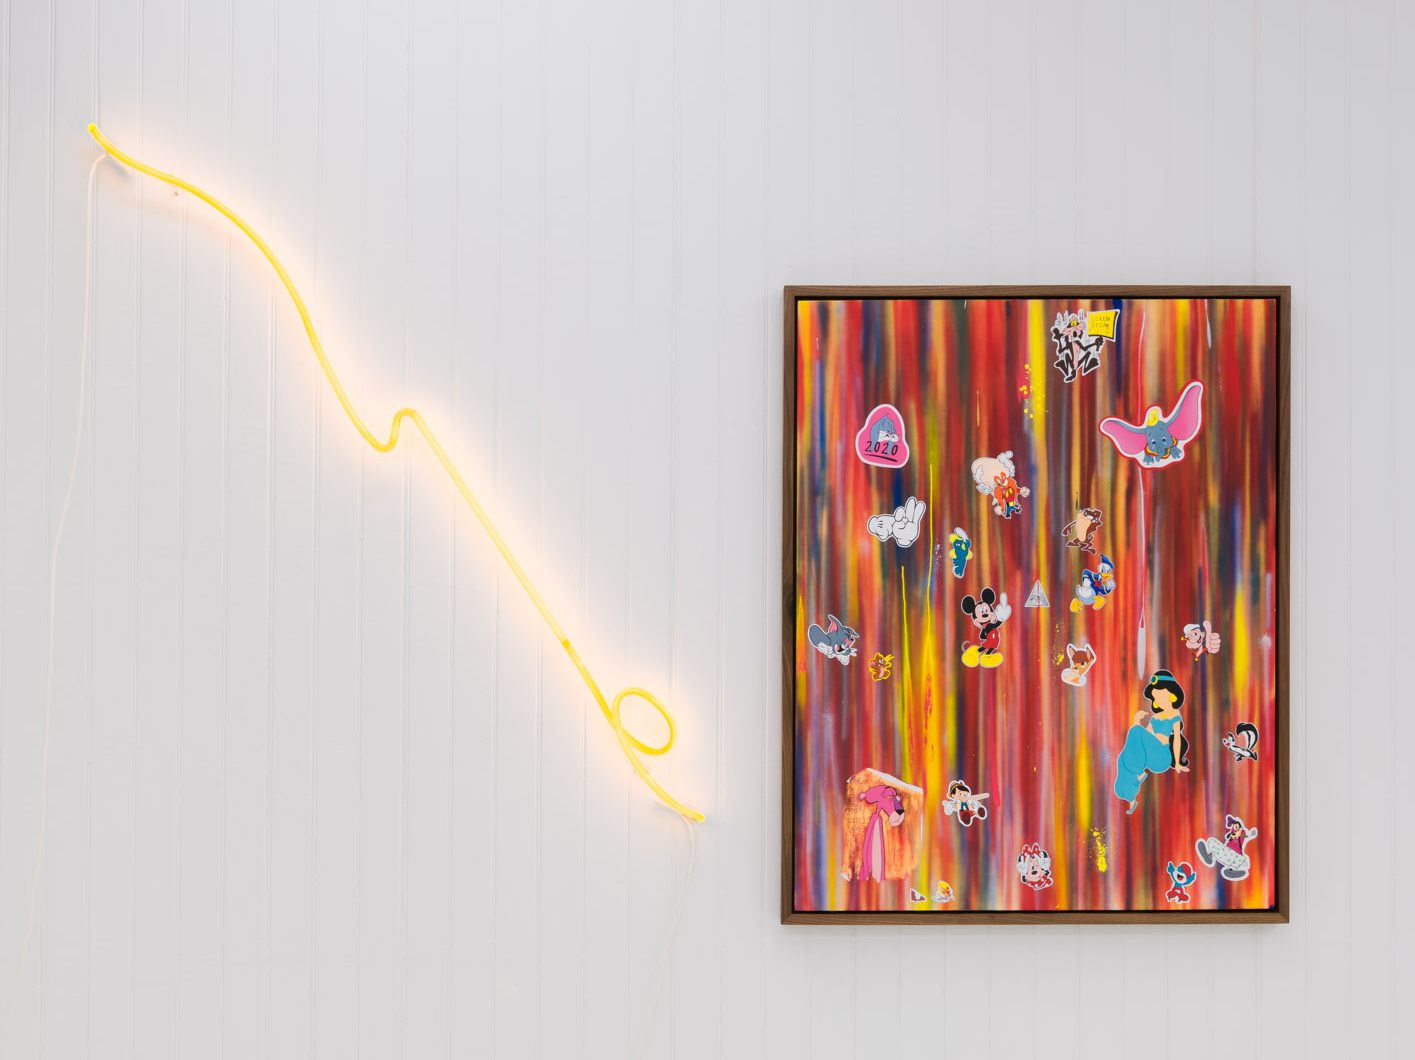 A framed work hangs on a white, paneled wall. On it, what could be stickers of Disney characters—Mickey, Dumbo, and Jasmine—seem to hover against a background of crowded neon brushstrokes (yellows, reds, blues, oranges). A lightning bolt yellow neon tube light hangs beside the work, directing the eye toward it.